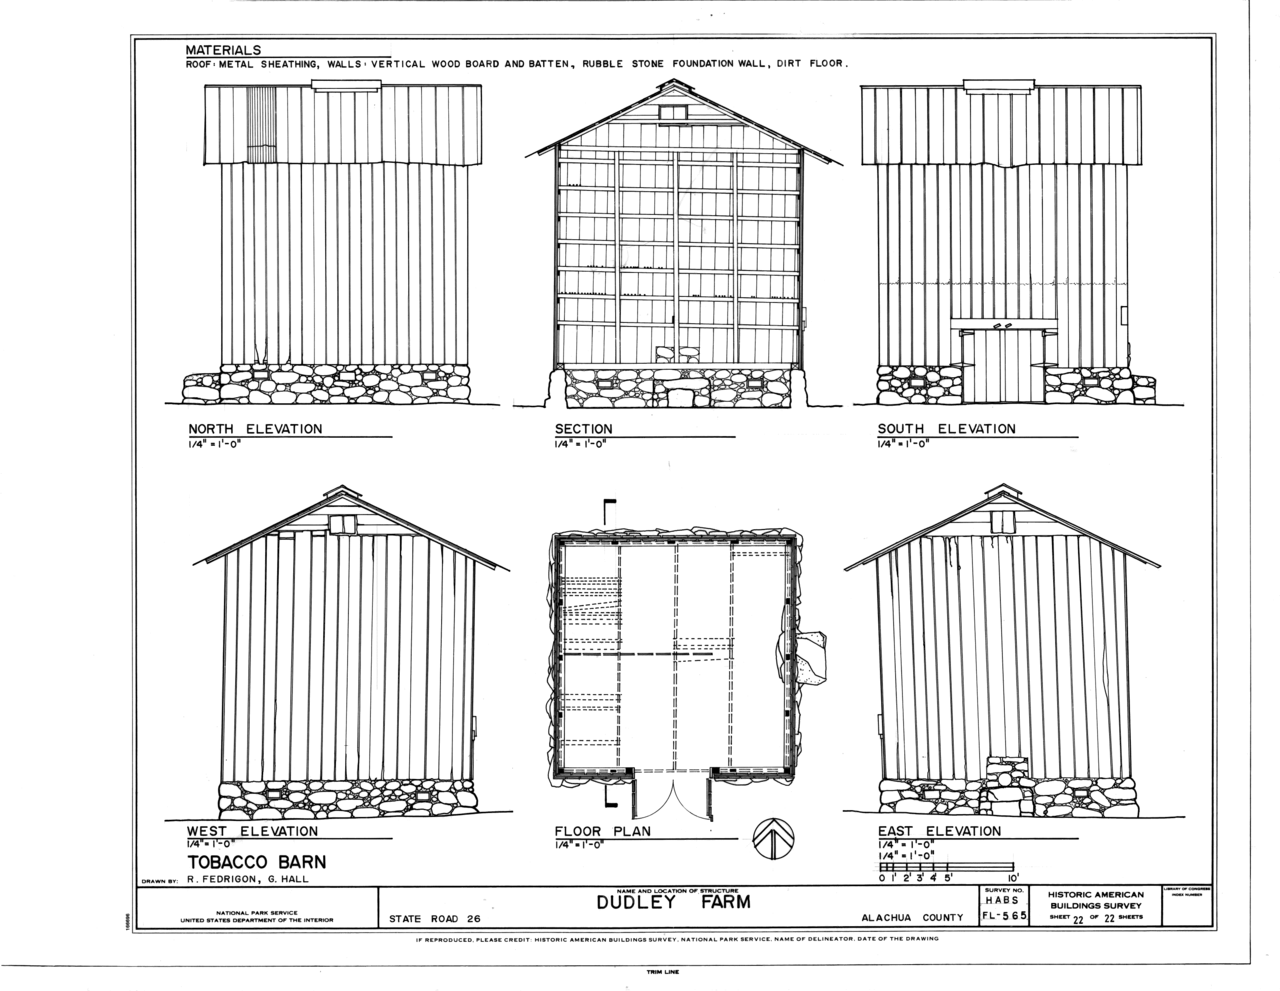 File Tobacco Barn Elevations Floor Plan And Section